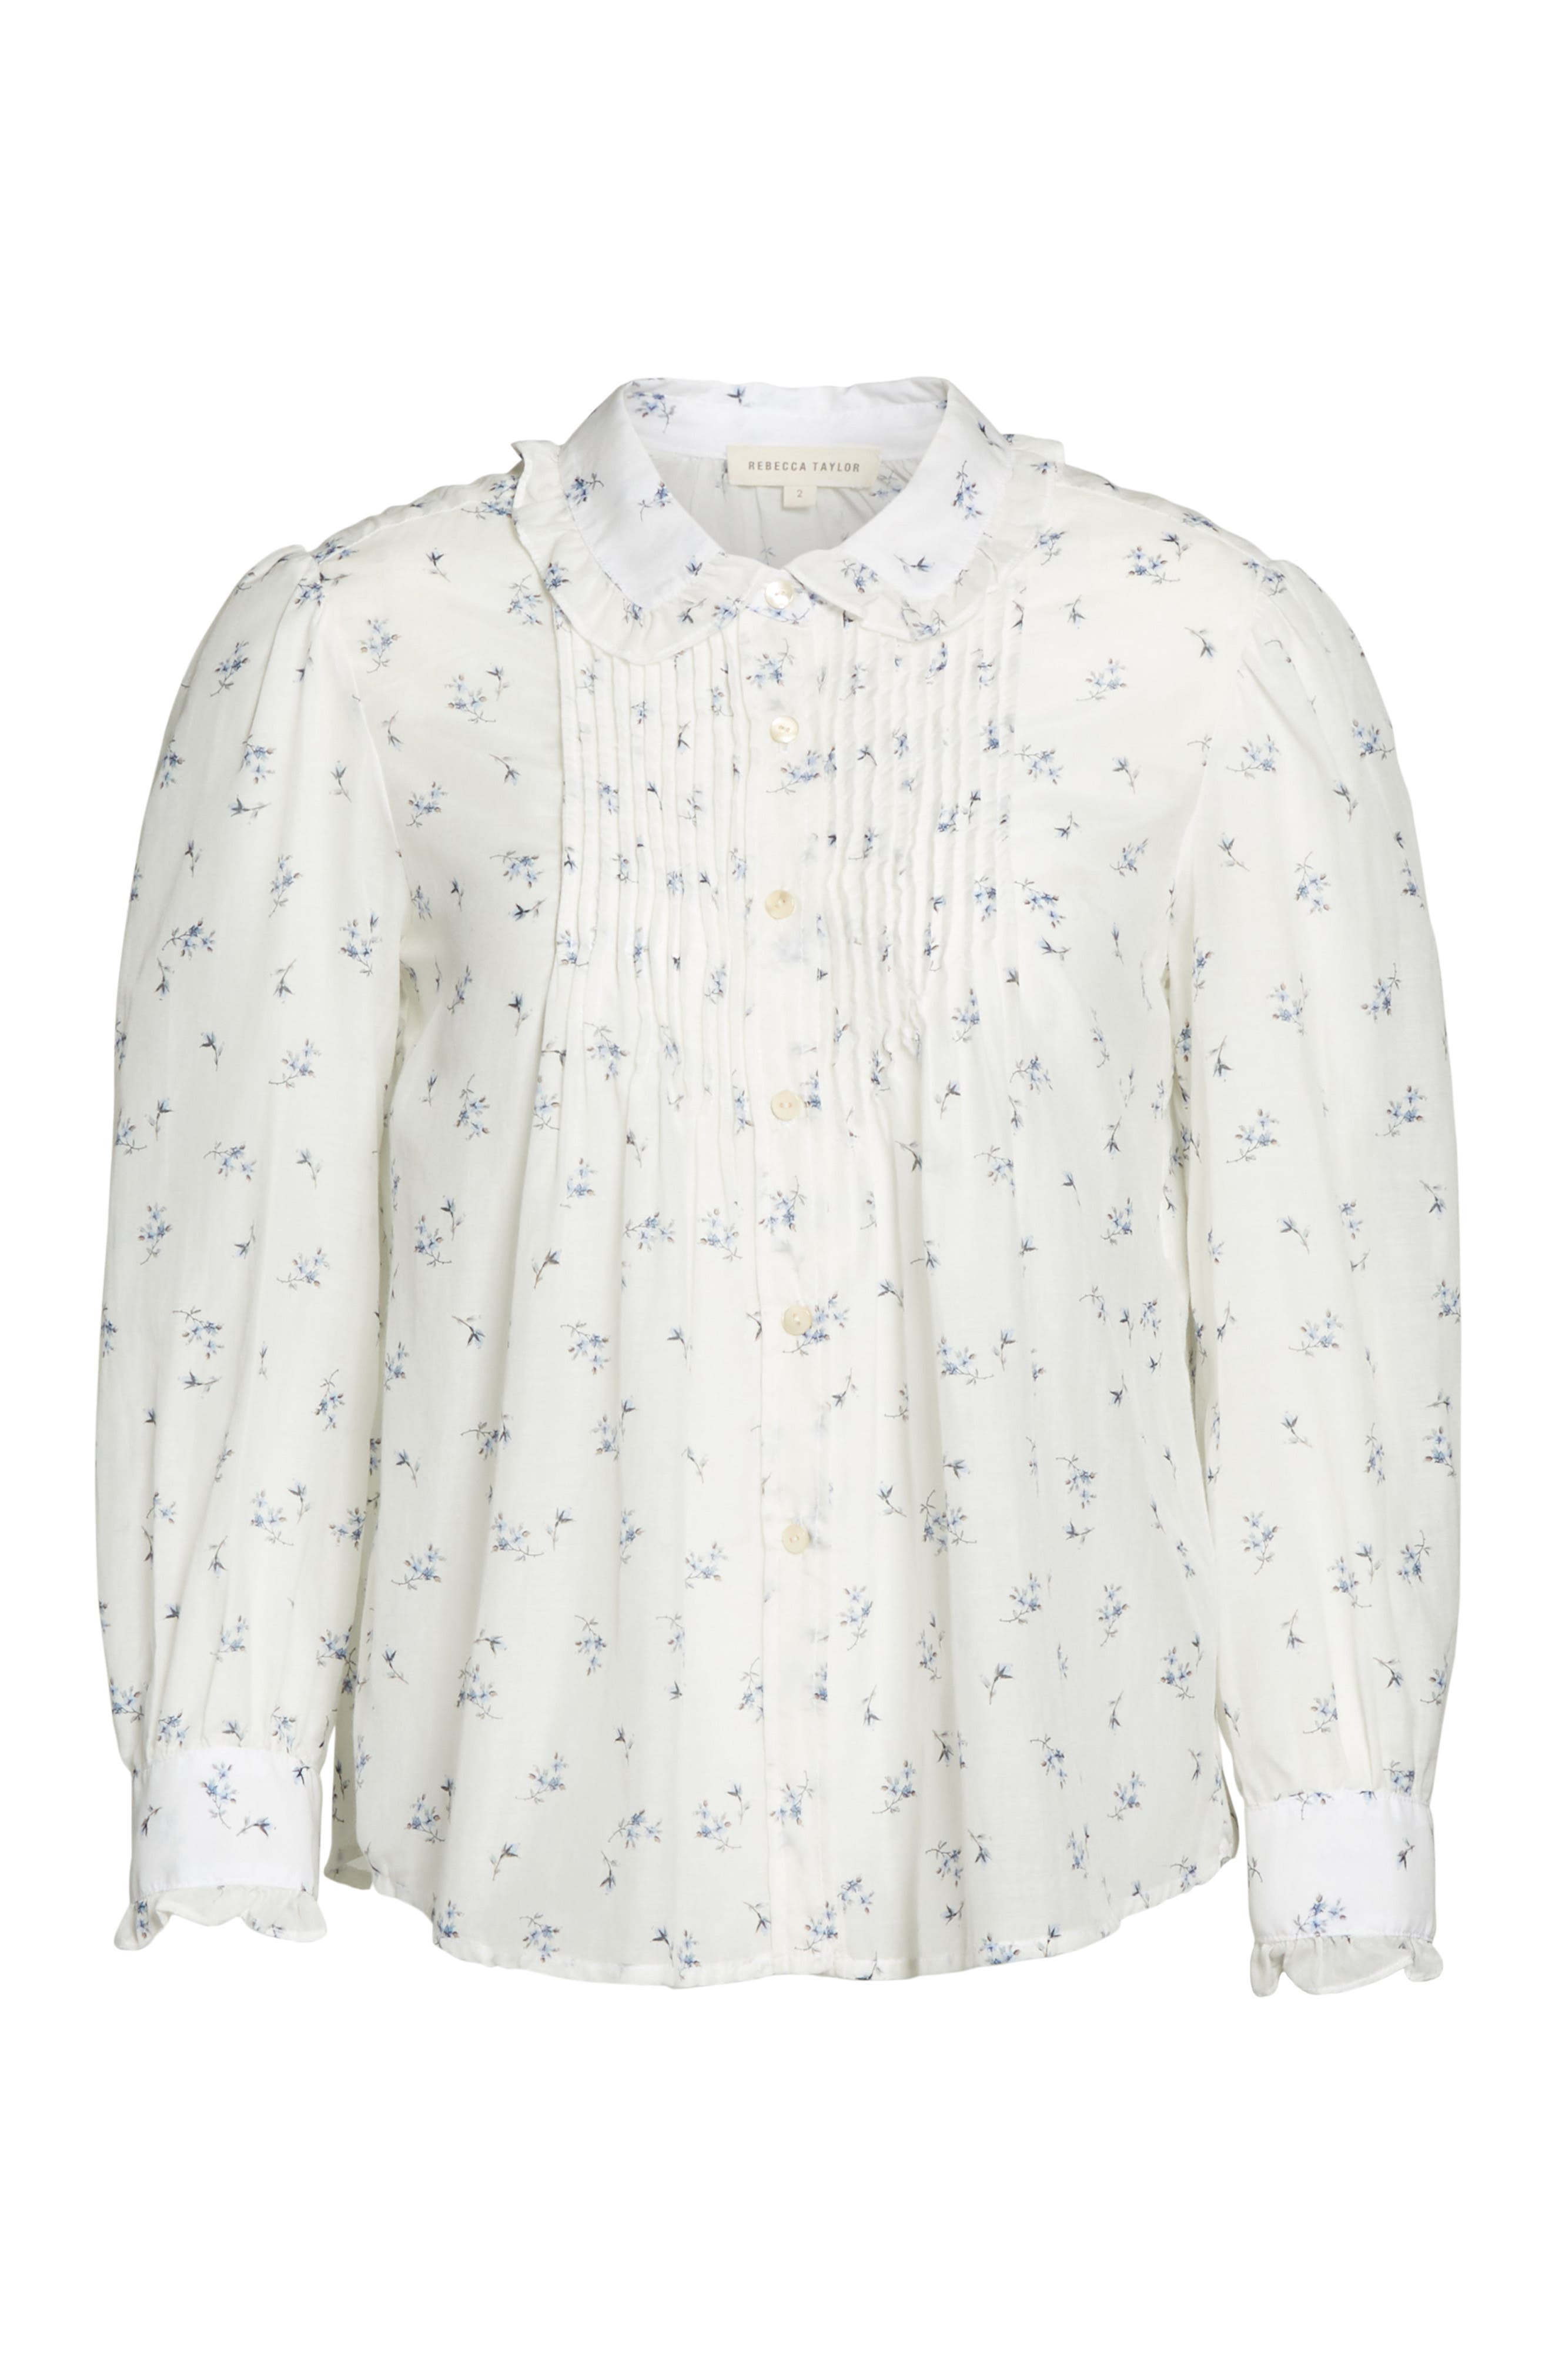 Floral Spring Blouse,                             Alternate thumbnail 6, color,                             Snow Combo